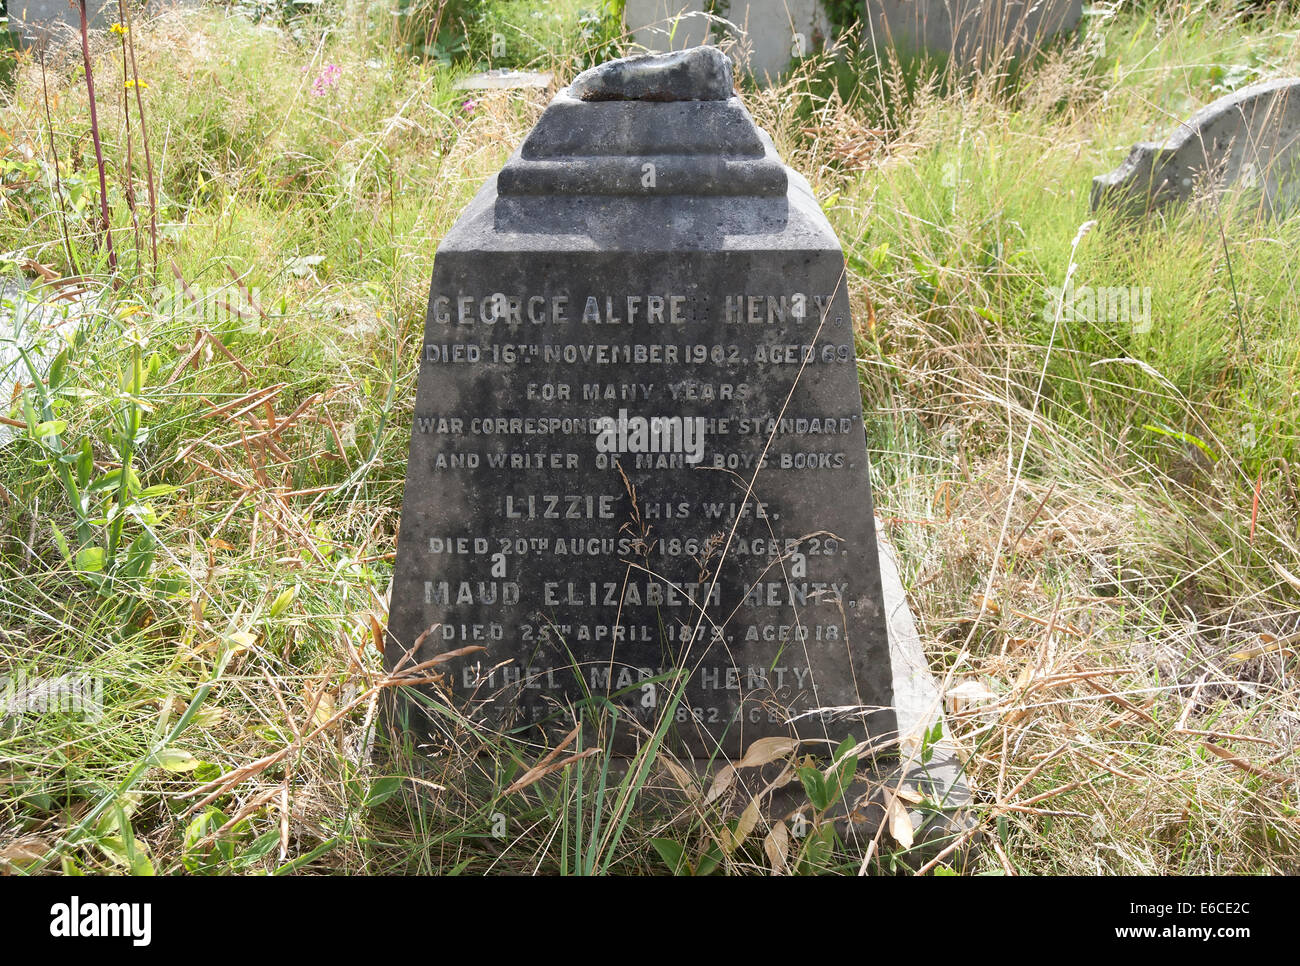 grave of writer george henty, in brompton cemetery, london, england - Stock Image